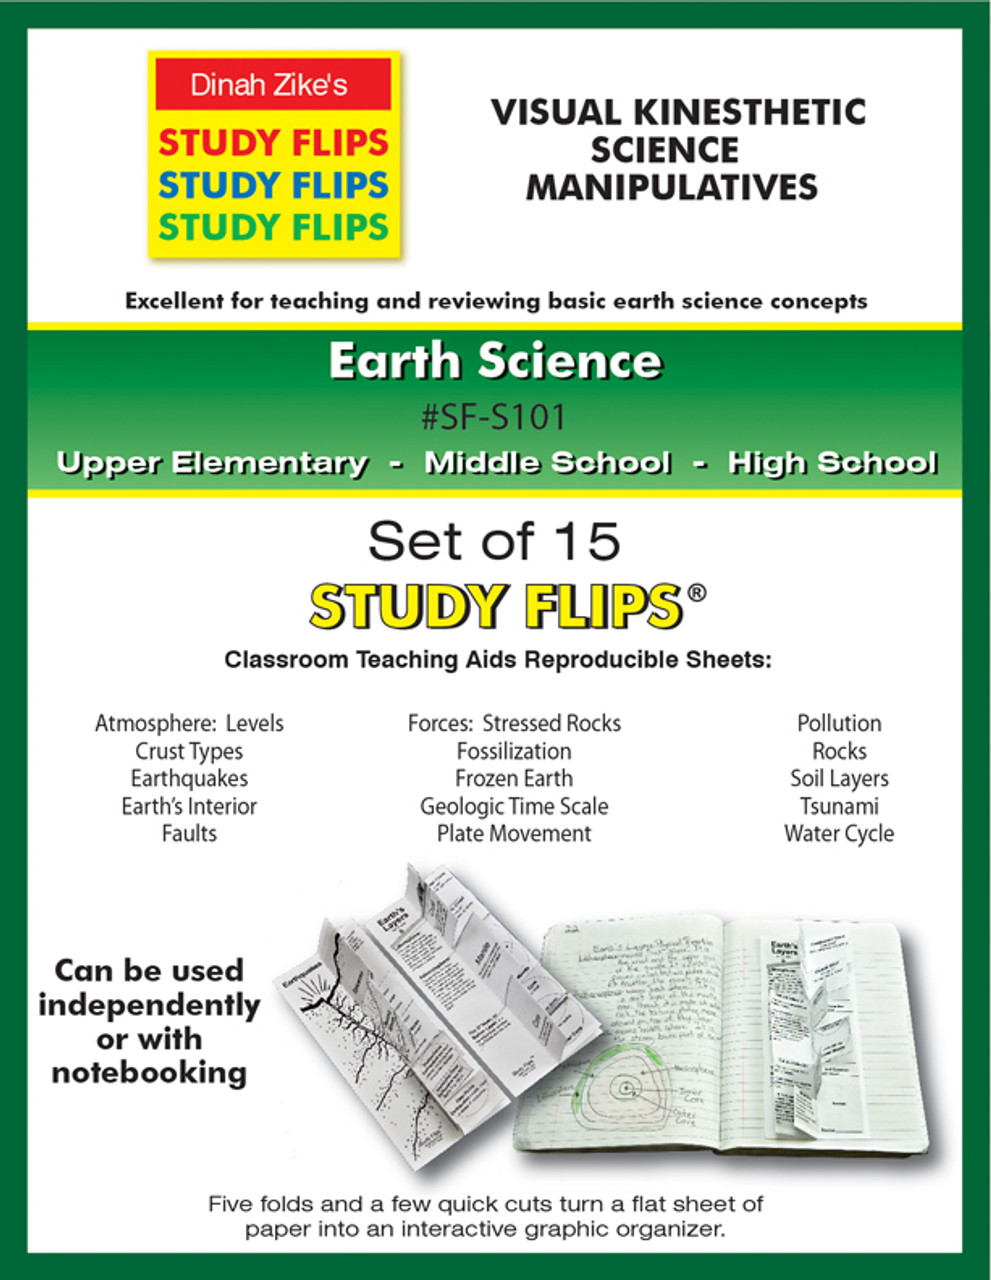 Earth science study flips cover sheet web